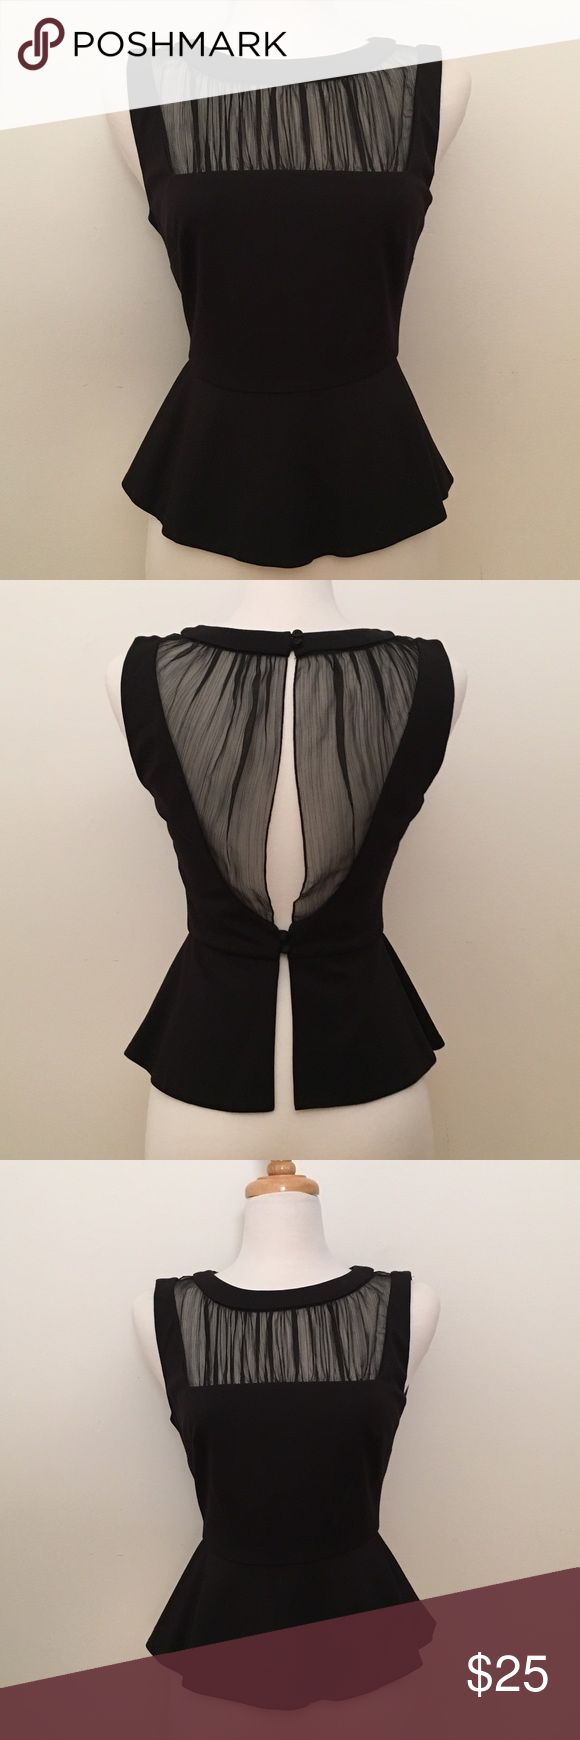 Bebe Black Peplum Top Like new condition. Black peplum top with open back. Feminine sheer detailing bebe Tops Blouses